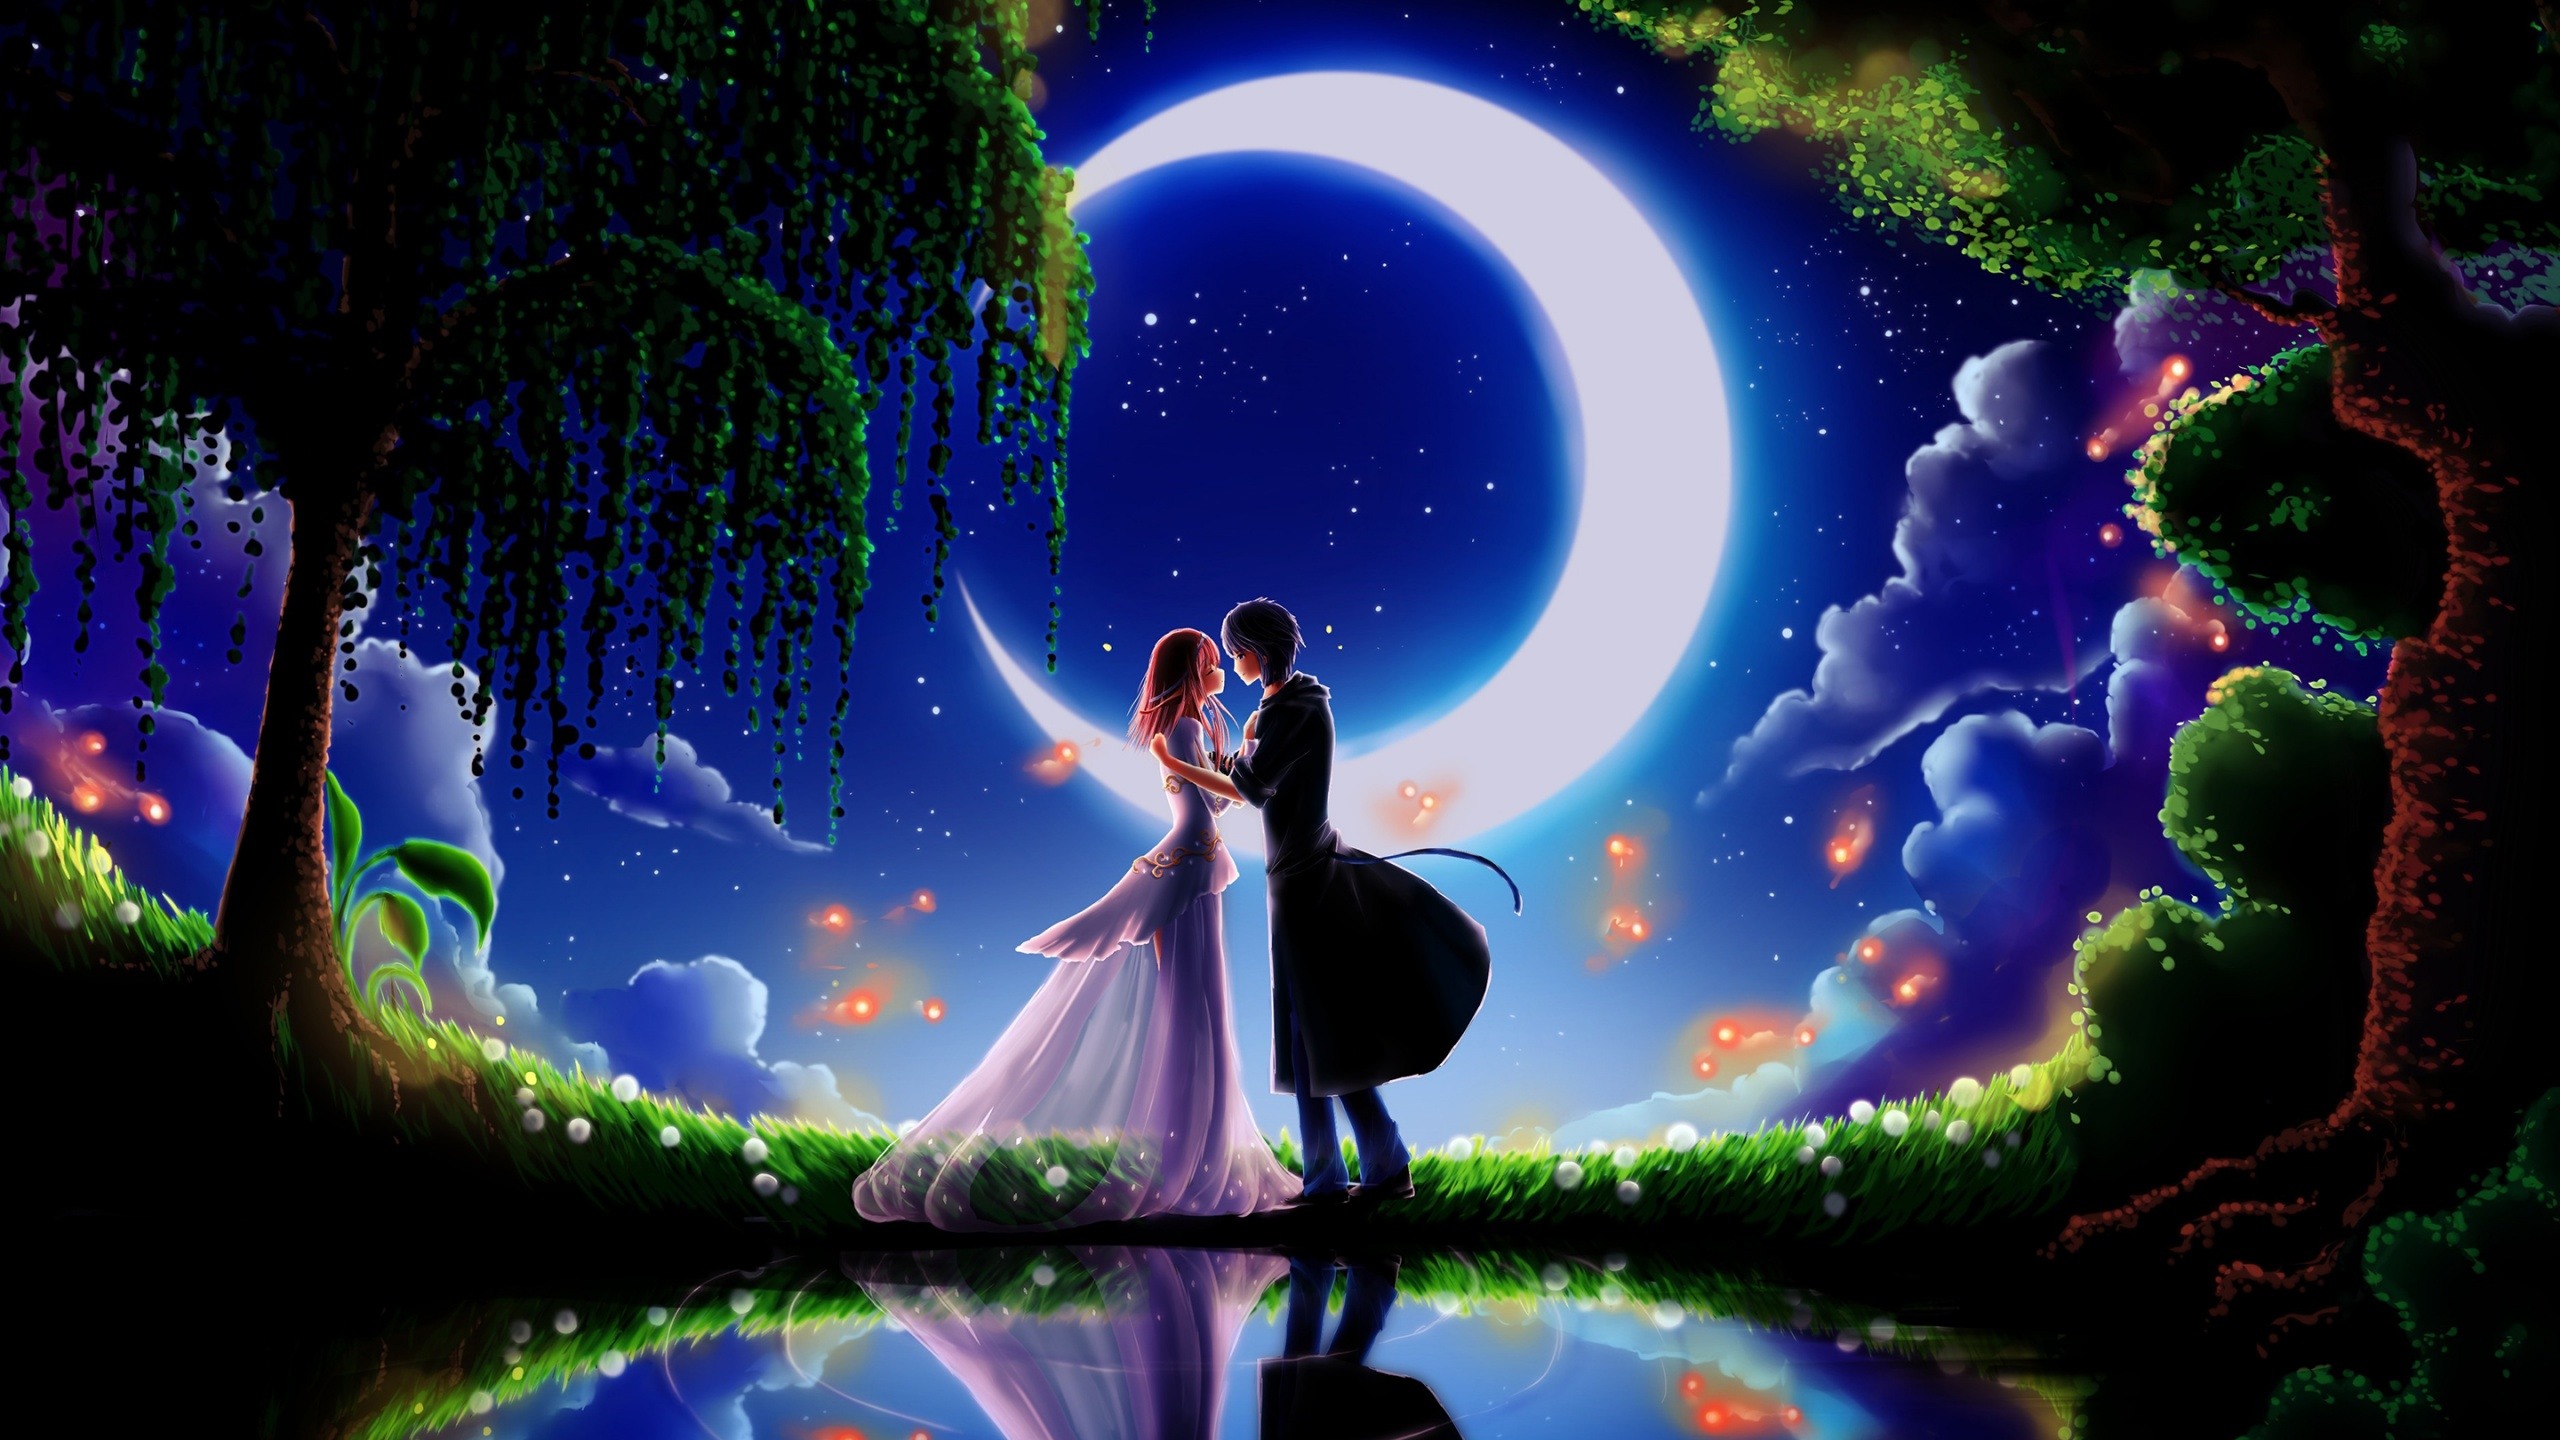 Wallpaper Hd Love Kiss cartoon : Kiss Wallpapers Best Wallpapers